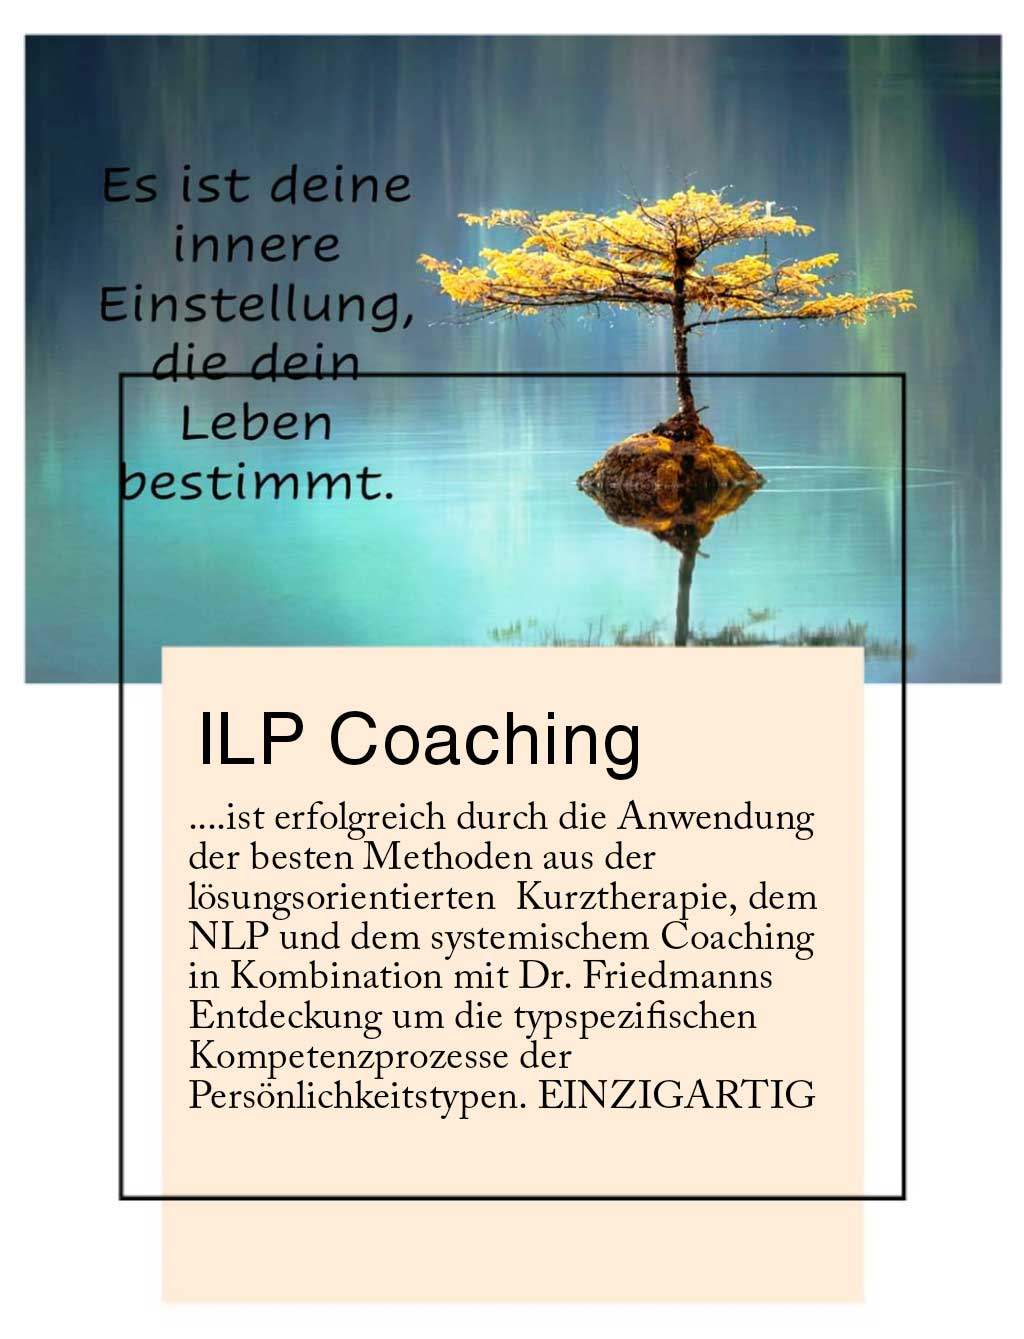 ILP Coaching